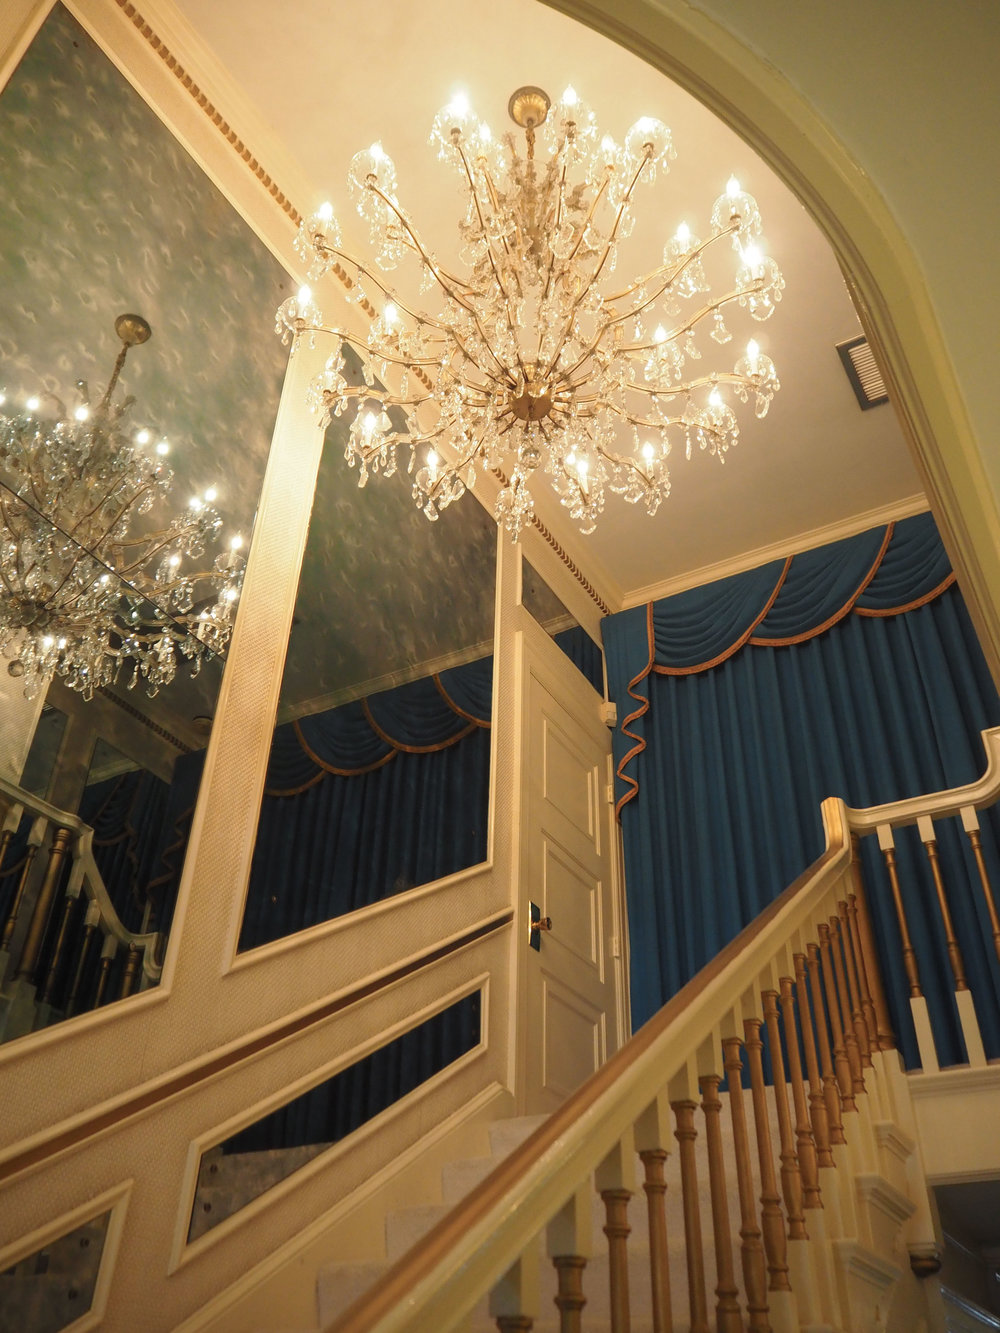 A beautiful chandelier hanging over the grand staircase at Graceland {Elvis Presley's home, in Memphis Tennessee}. To read more and see more pics, click here.